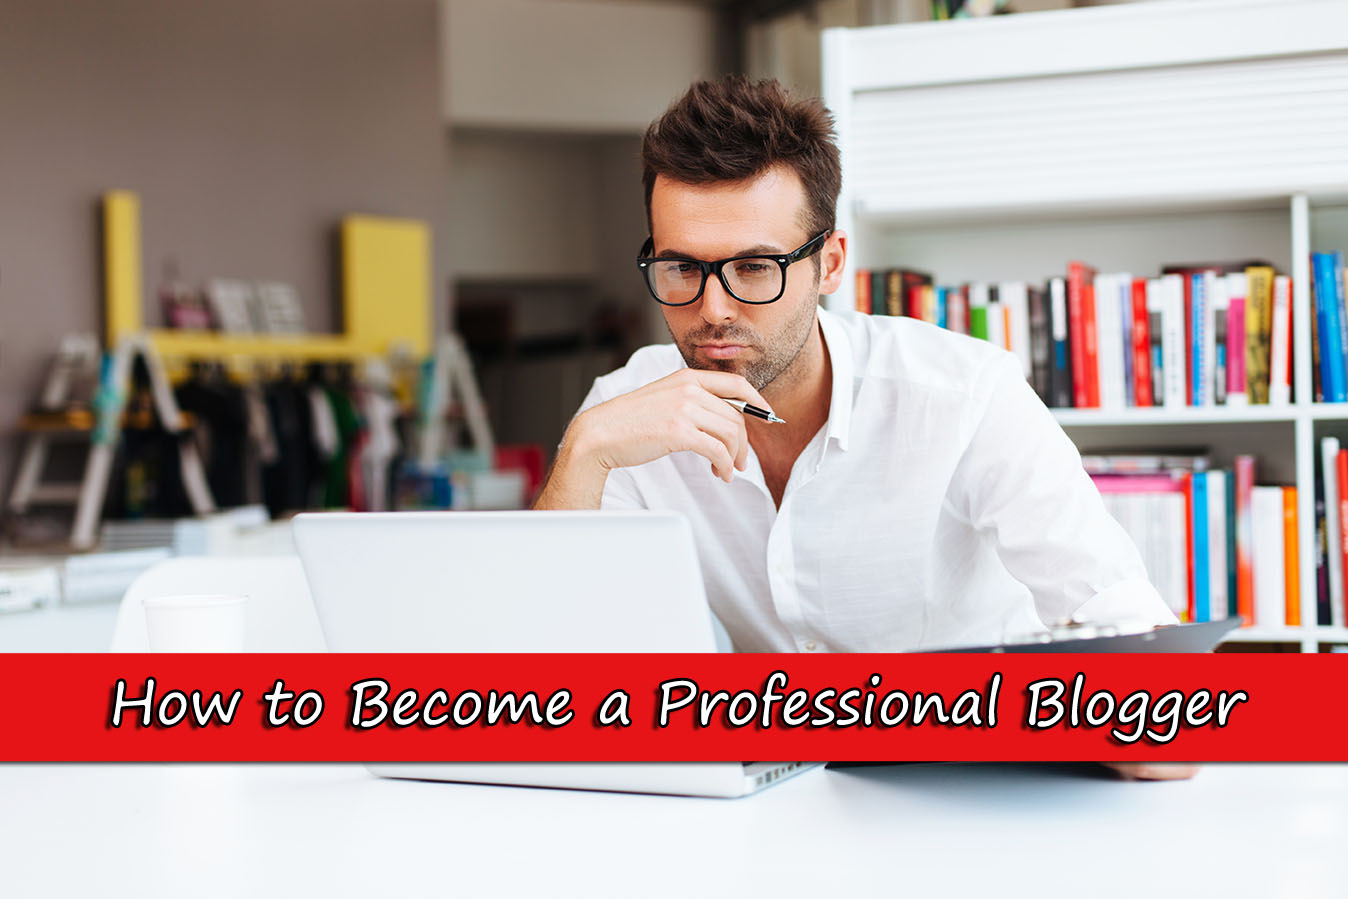 Top 10 skills you need to have to become a professional blogger